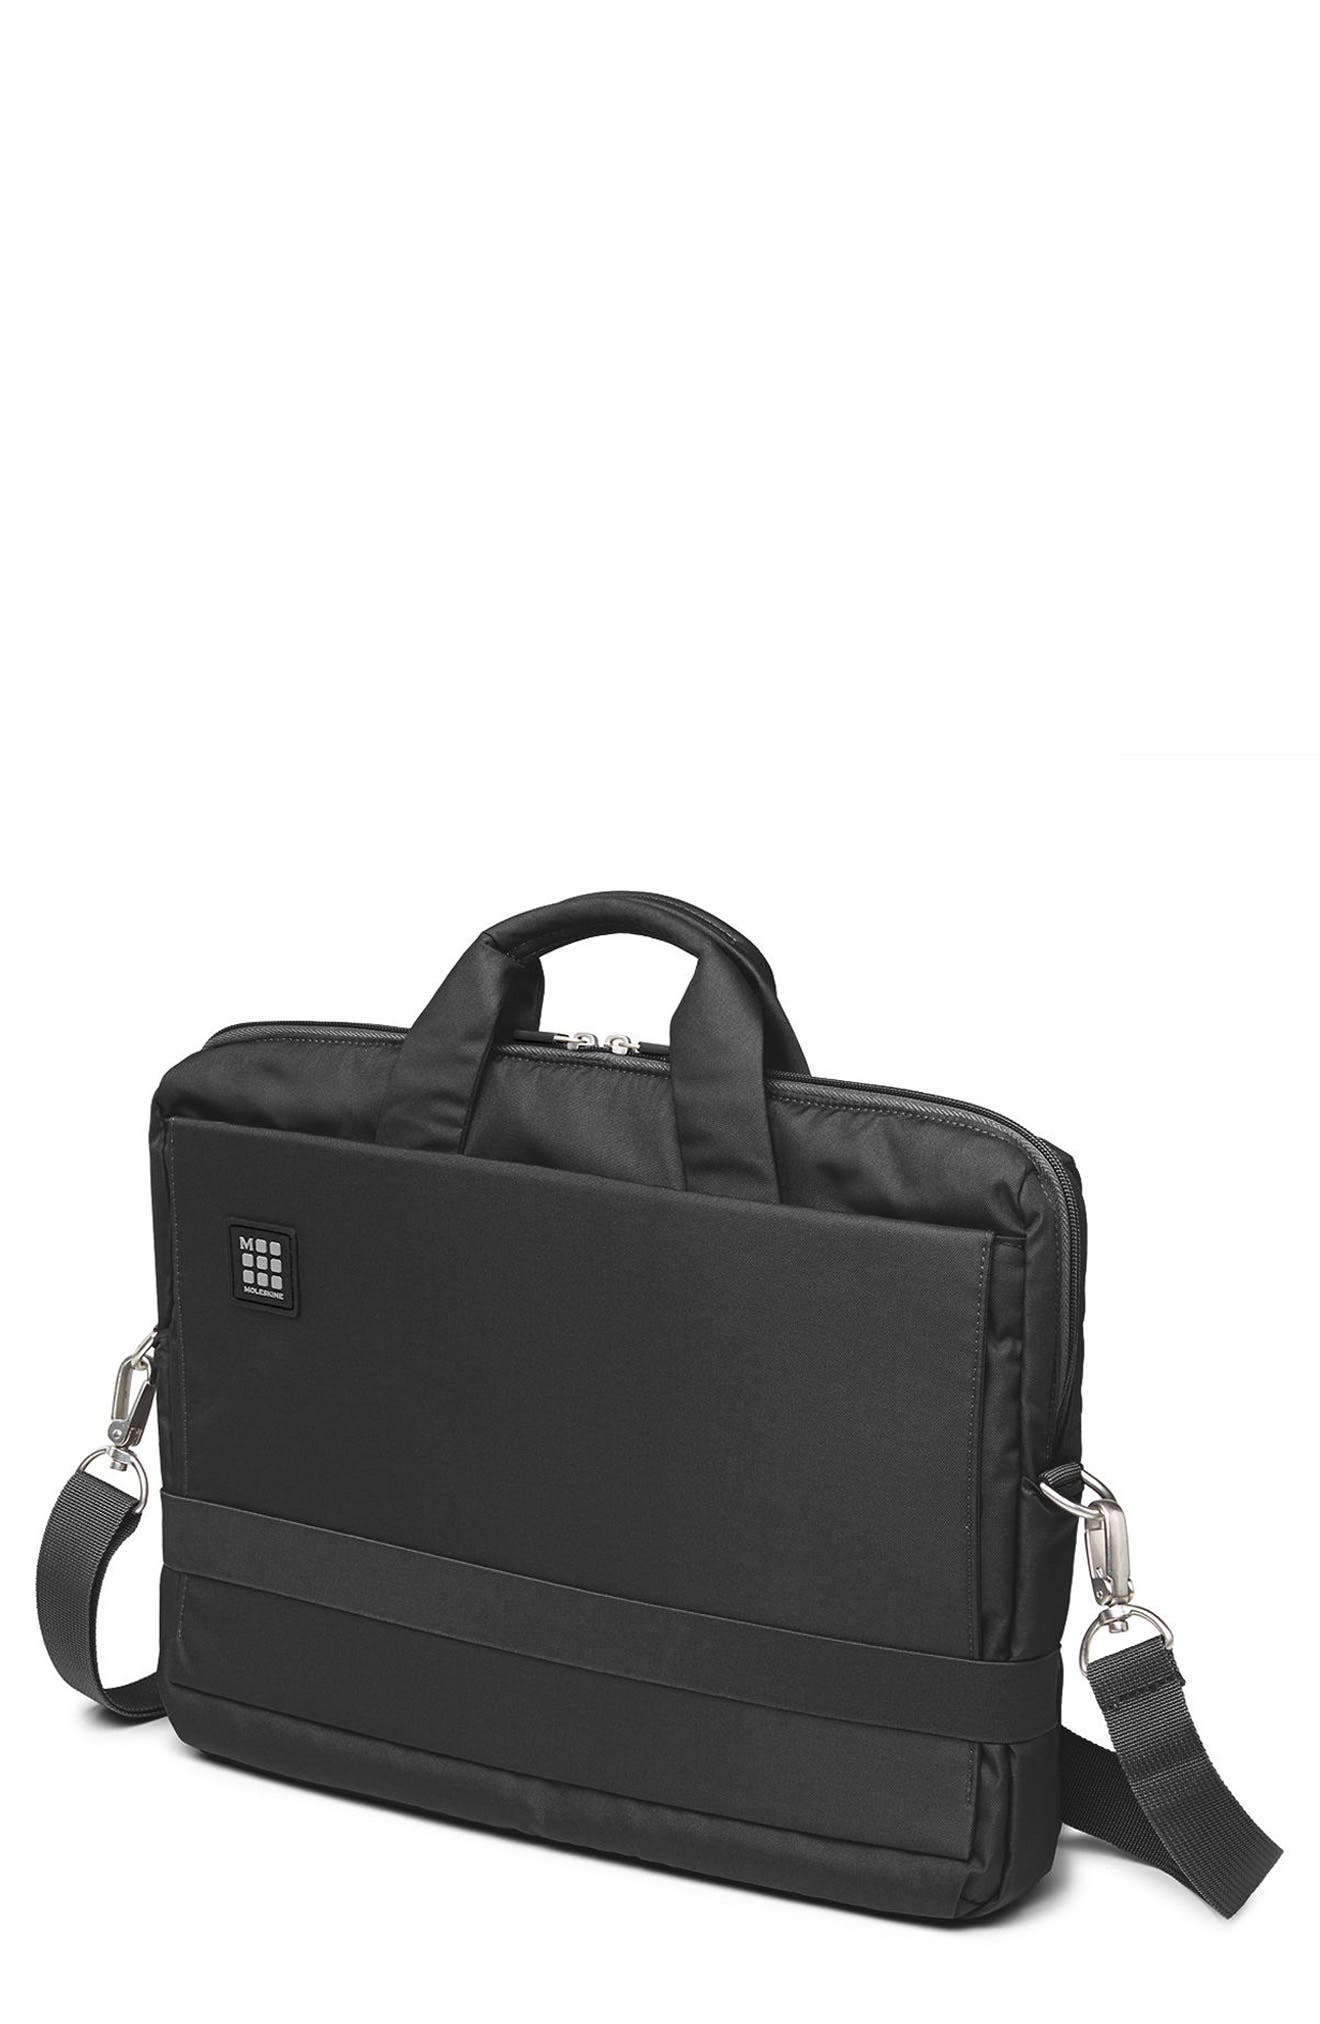 Main Image - Moleskine Horizontal Device Bag